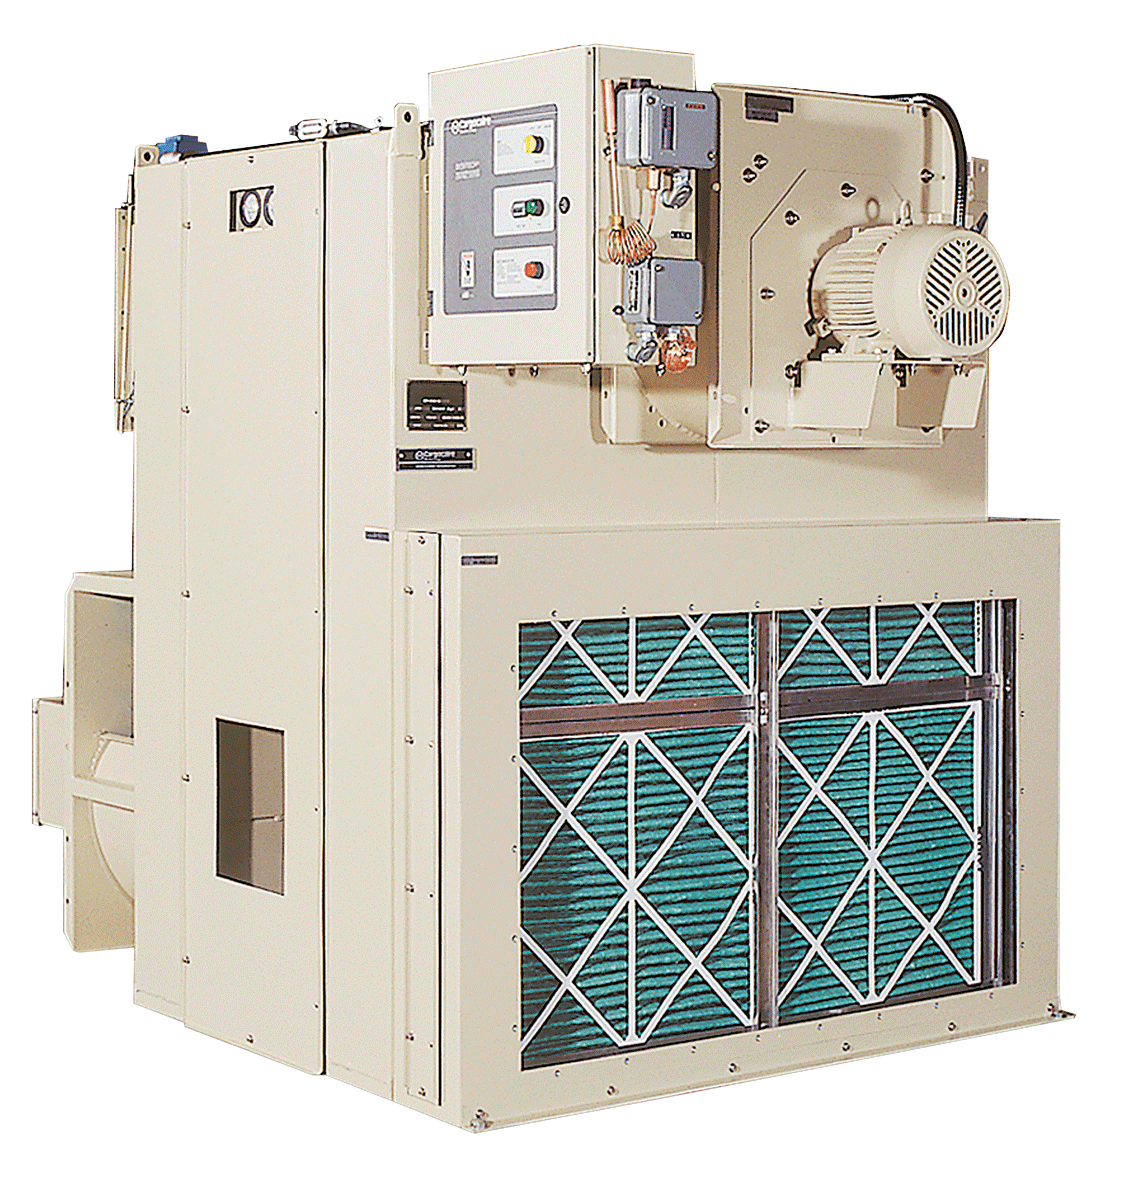 Hcd 4500 Desiccant Dehumidifier Products Munters Wiring Diagram At Product Hcd4500 9000